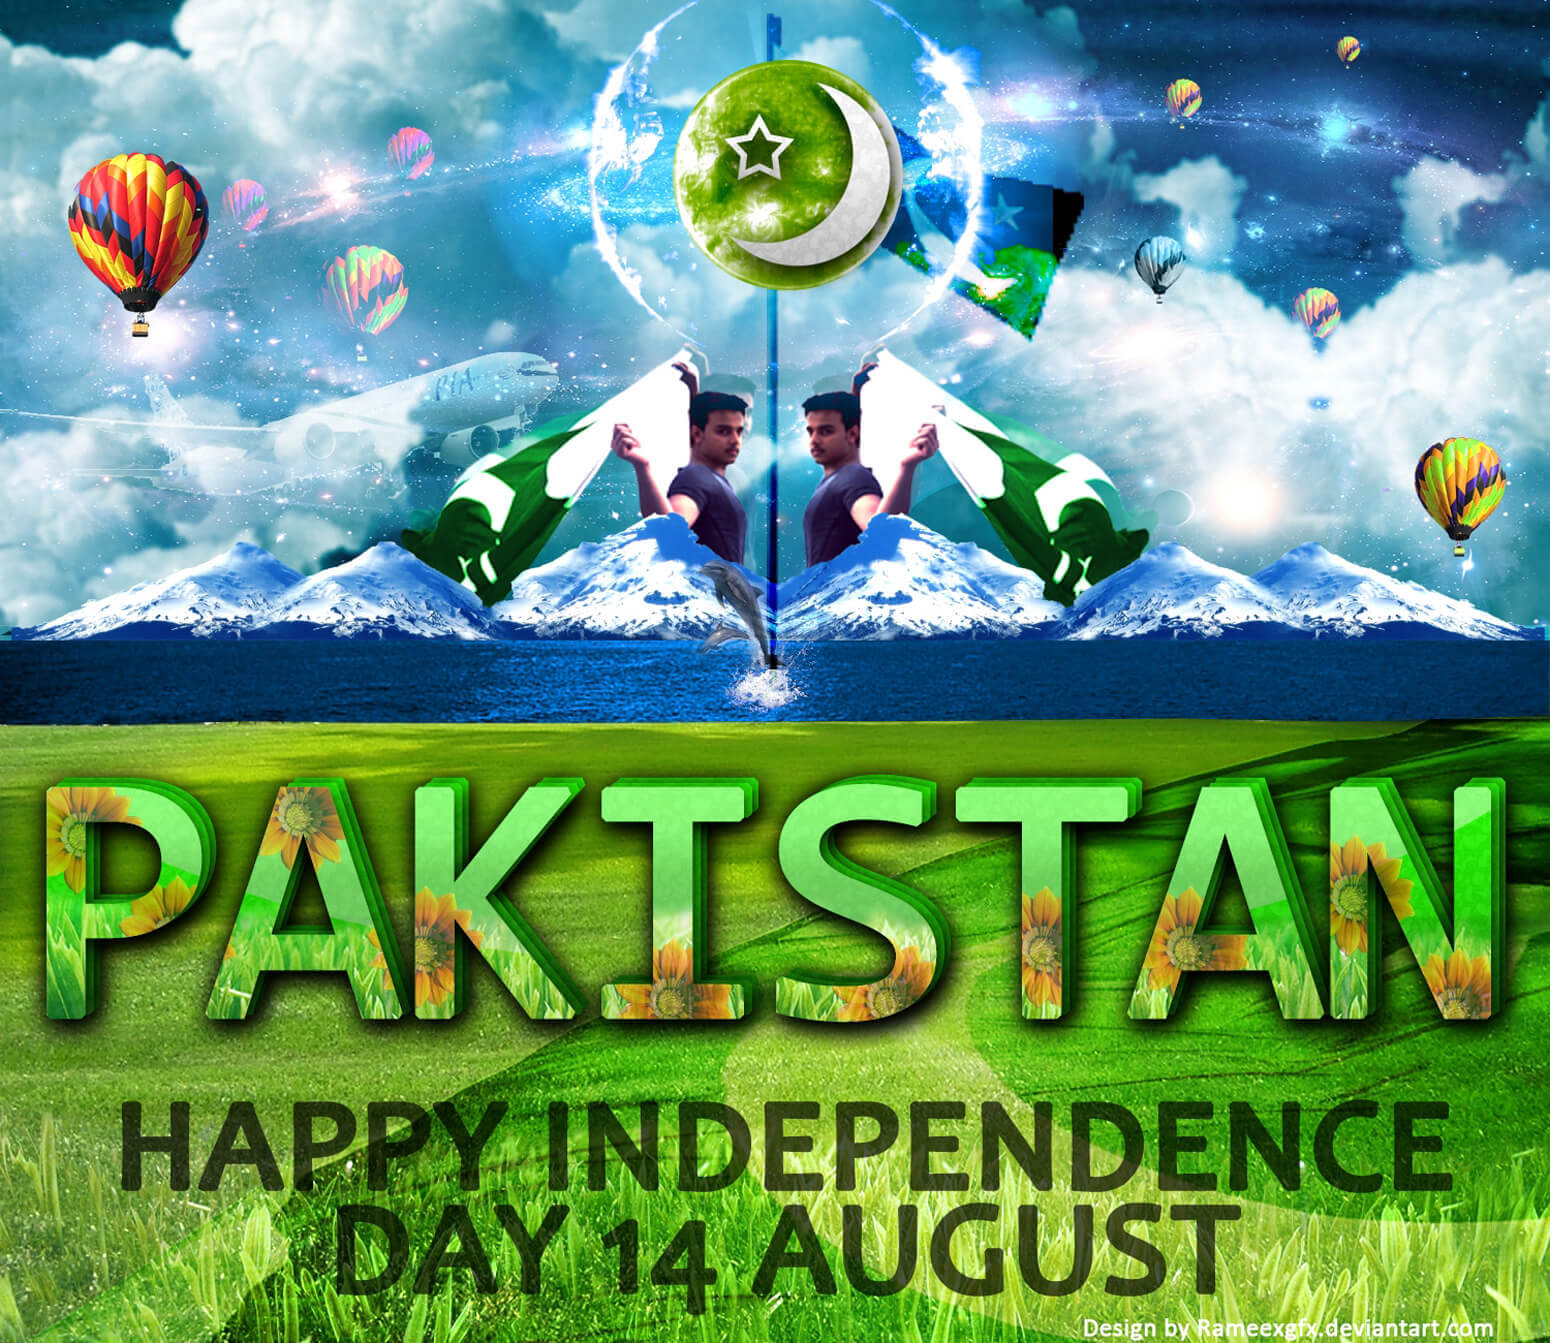 14 August Independence Day-PAK by rameexgfx Rameez SOOMRO